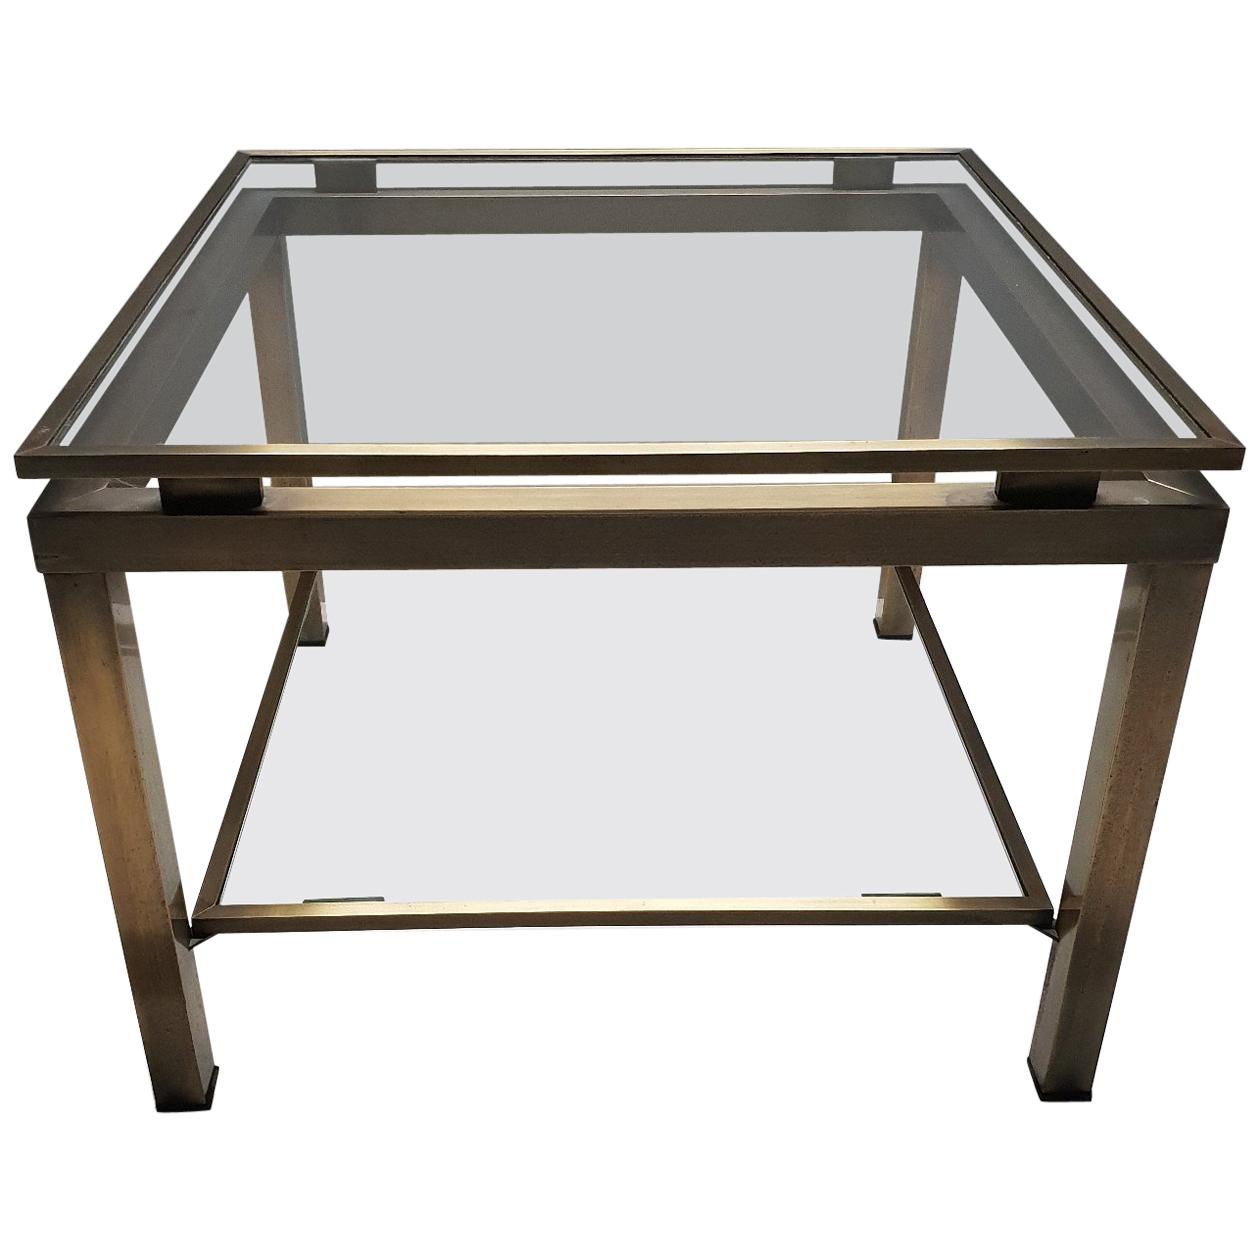 Maison Jansen Furniture - 654 For Sale At 1Stdibs regarding Mix Leather Imprint Metal Frame Console Tables (Image 13 of 30)